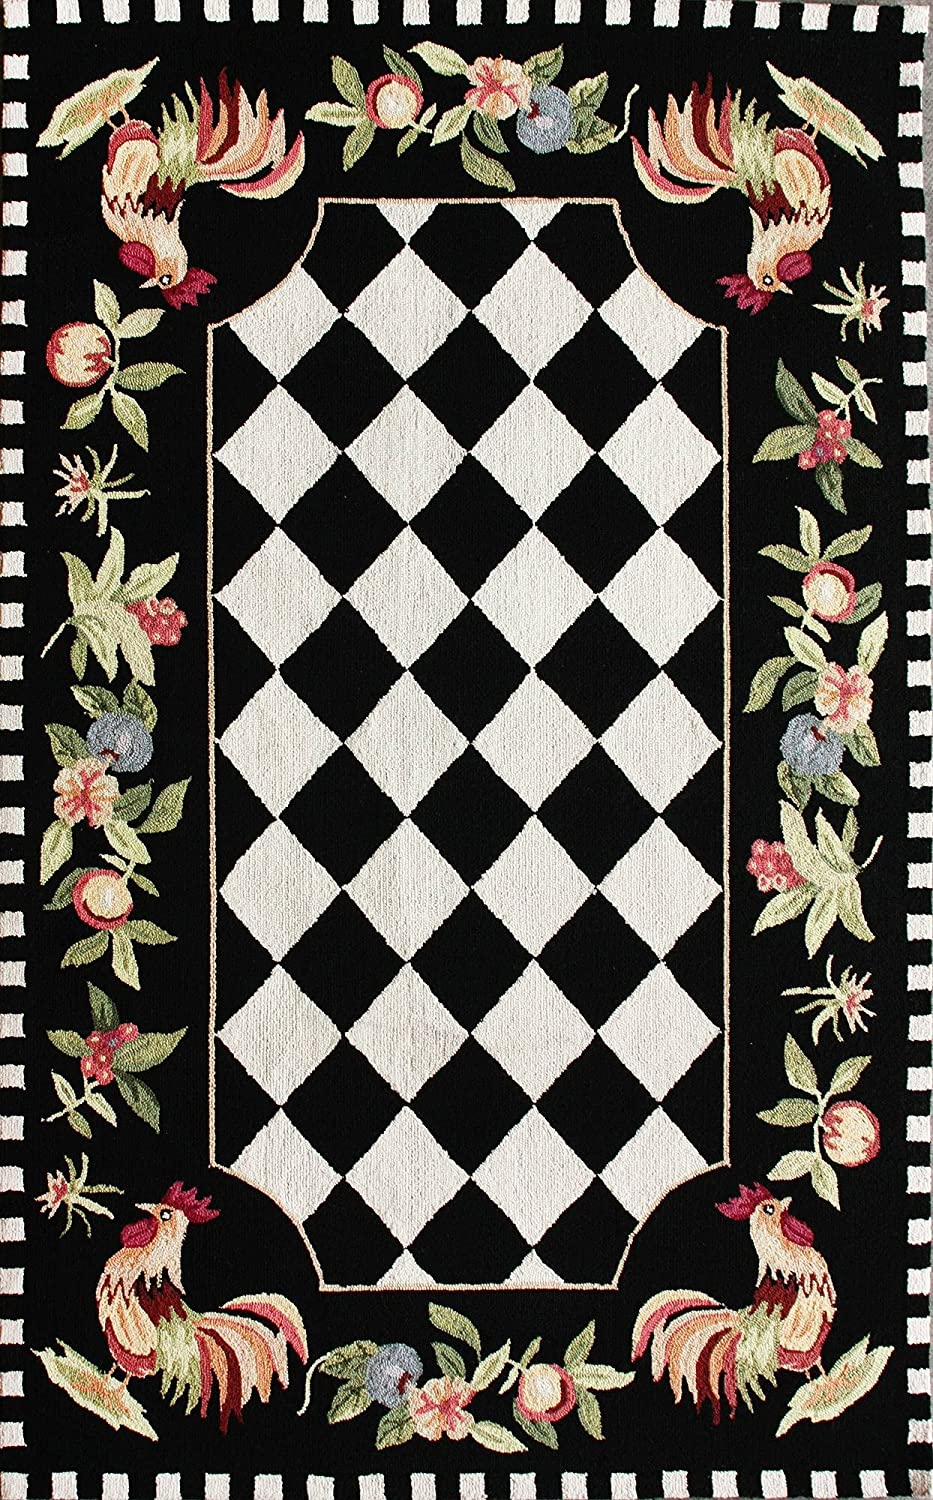 Black & White Checkered Farmhouse Rooster Area Rug